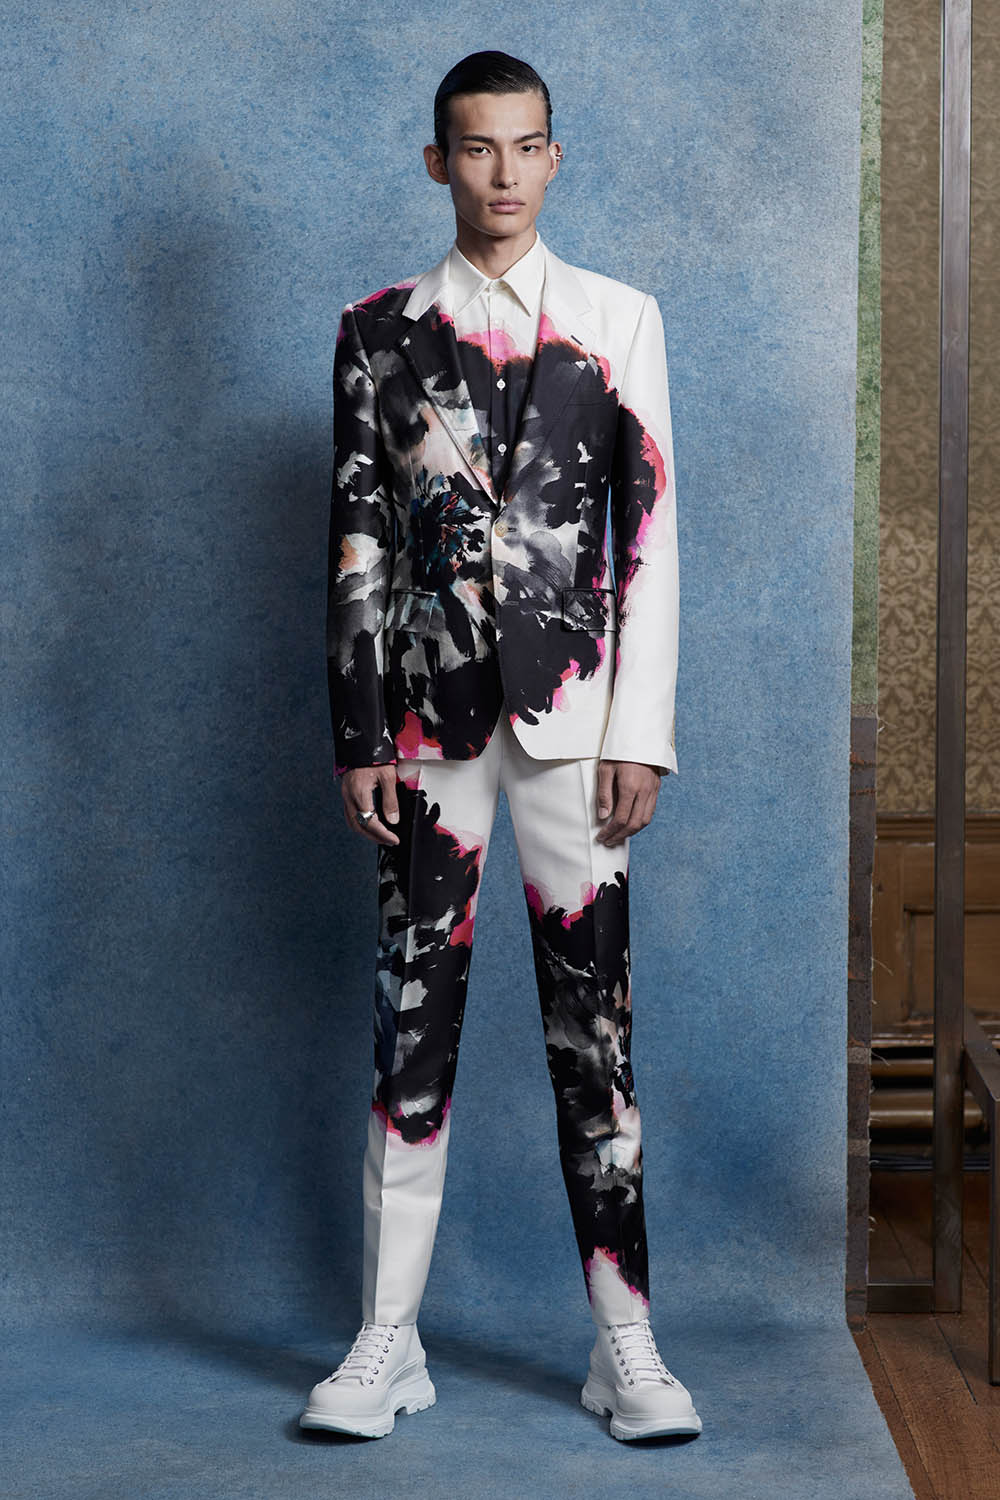 Alexander McQueen Men's Spring Summer 2020 Lookbook